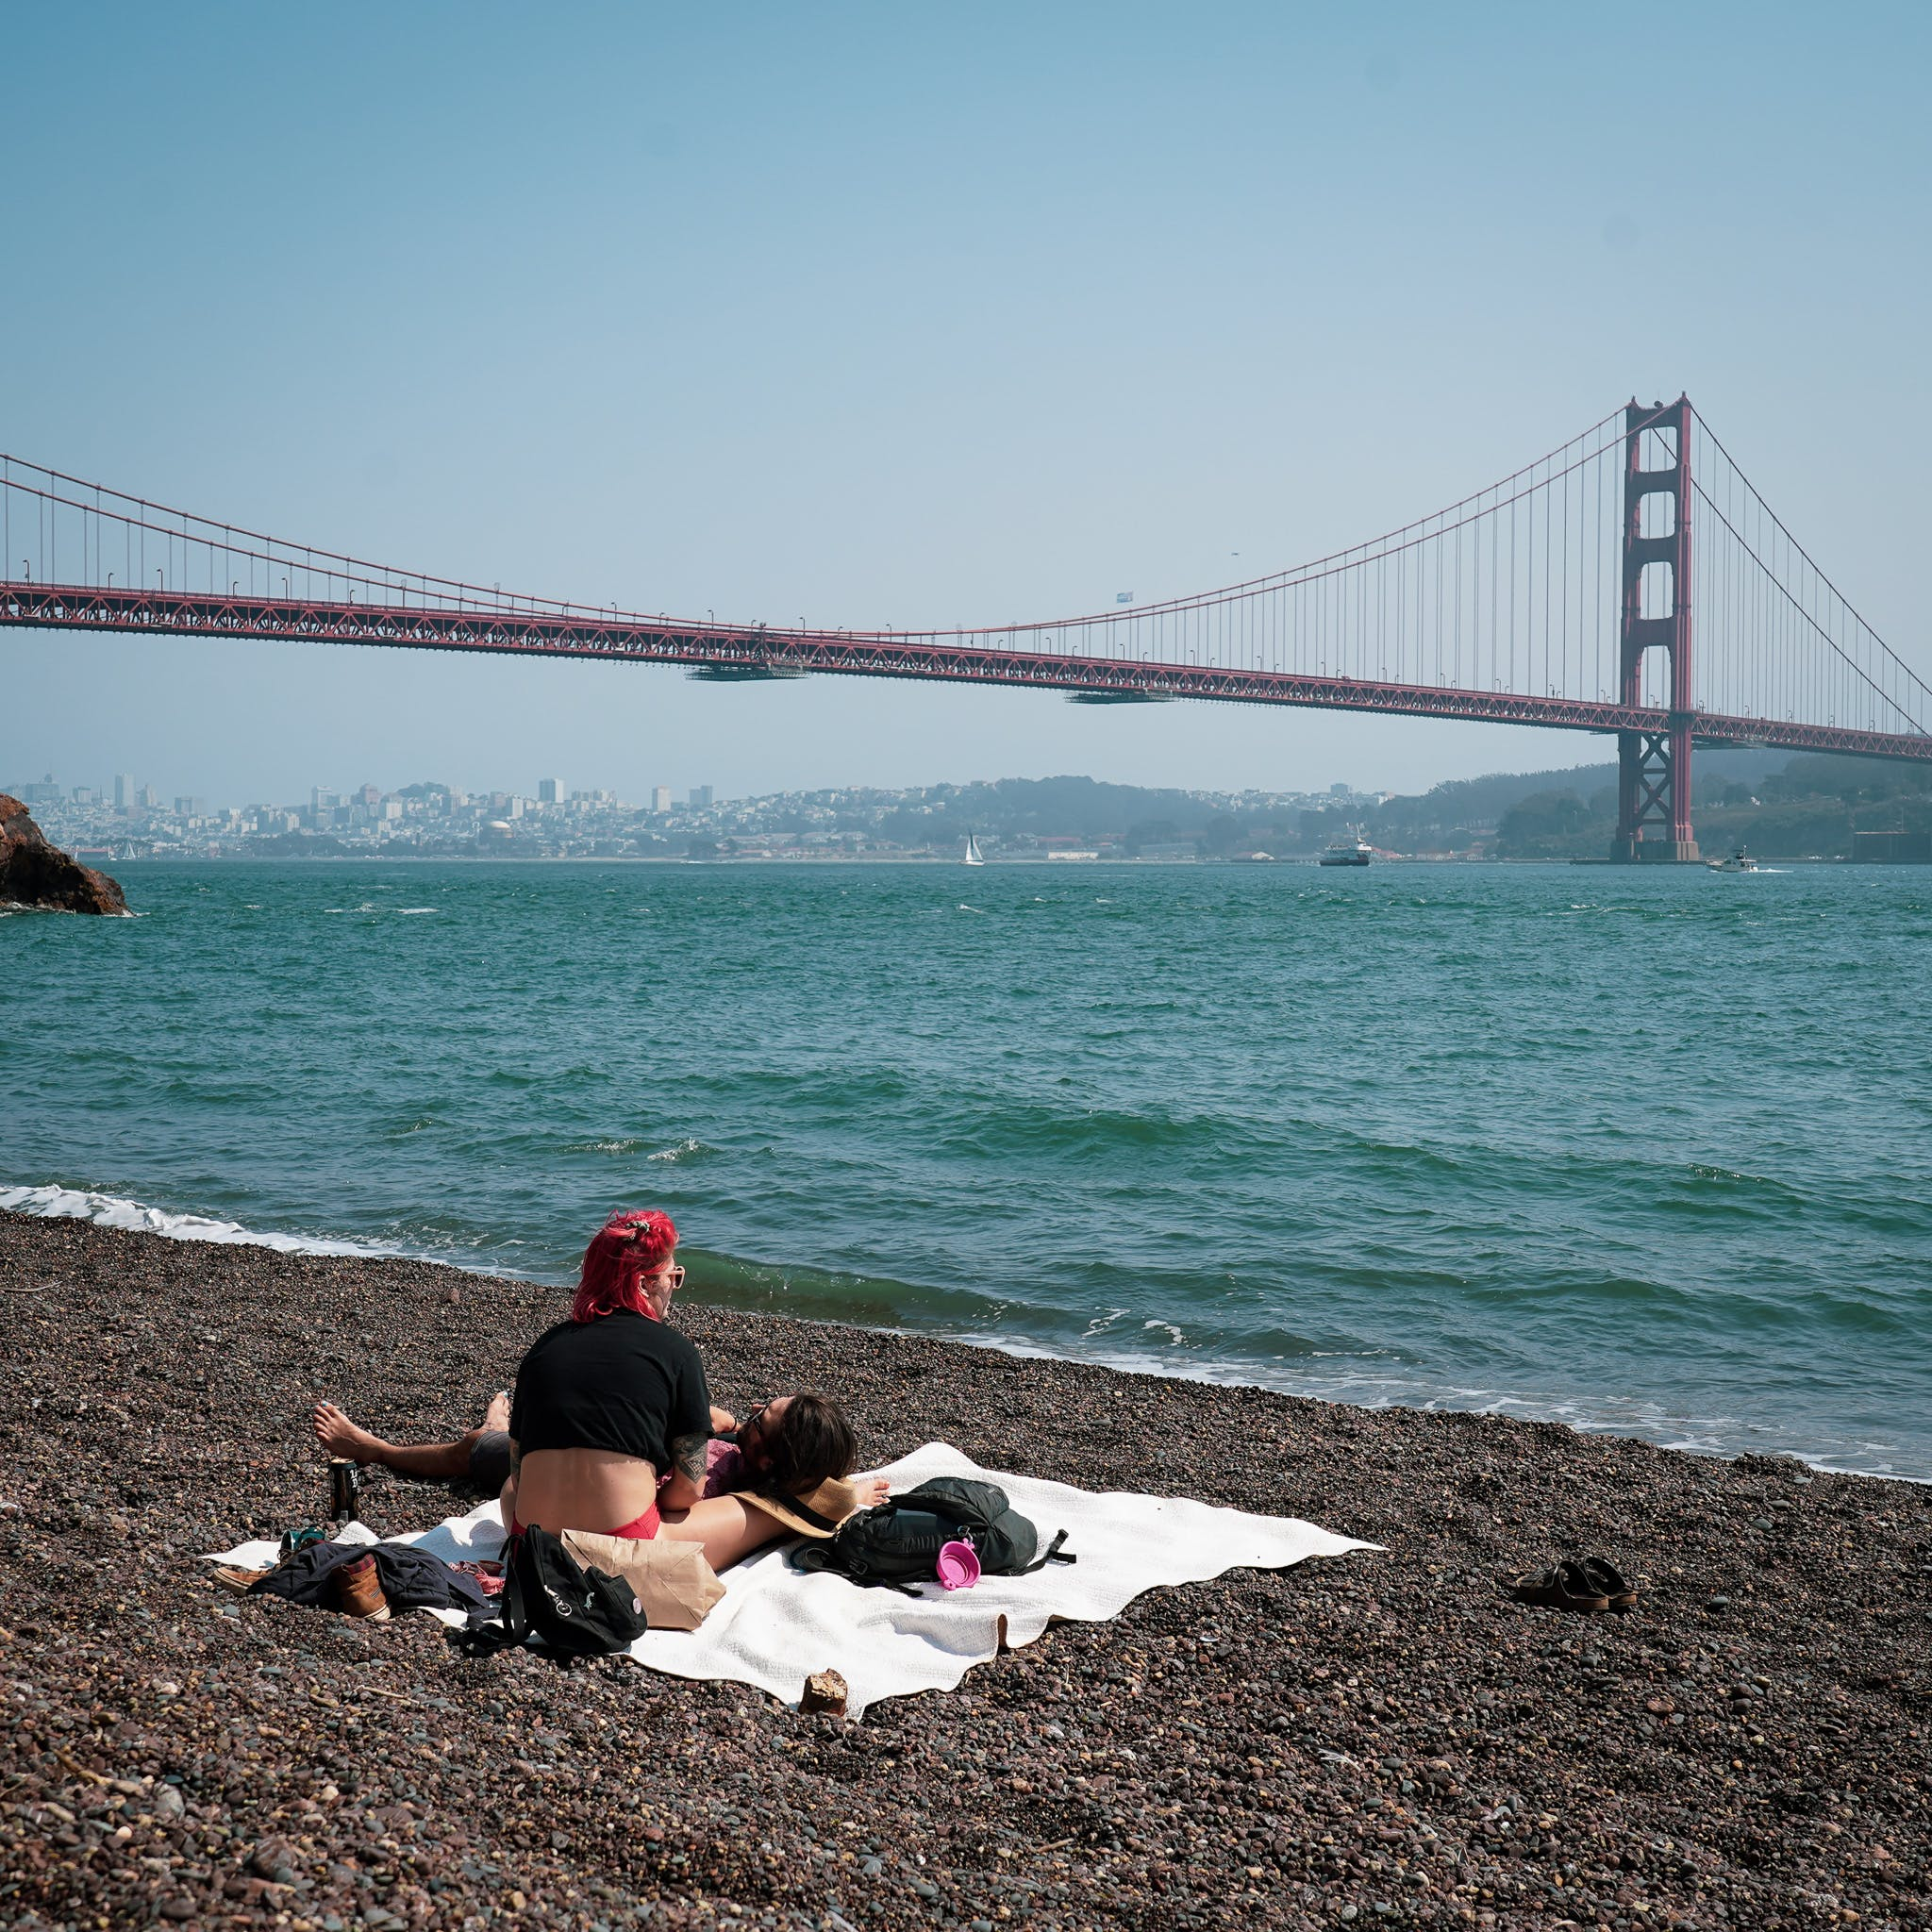 A few people relaxing on the beach at Kirby Cove with the Golden Gate Bridge in the background